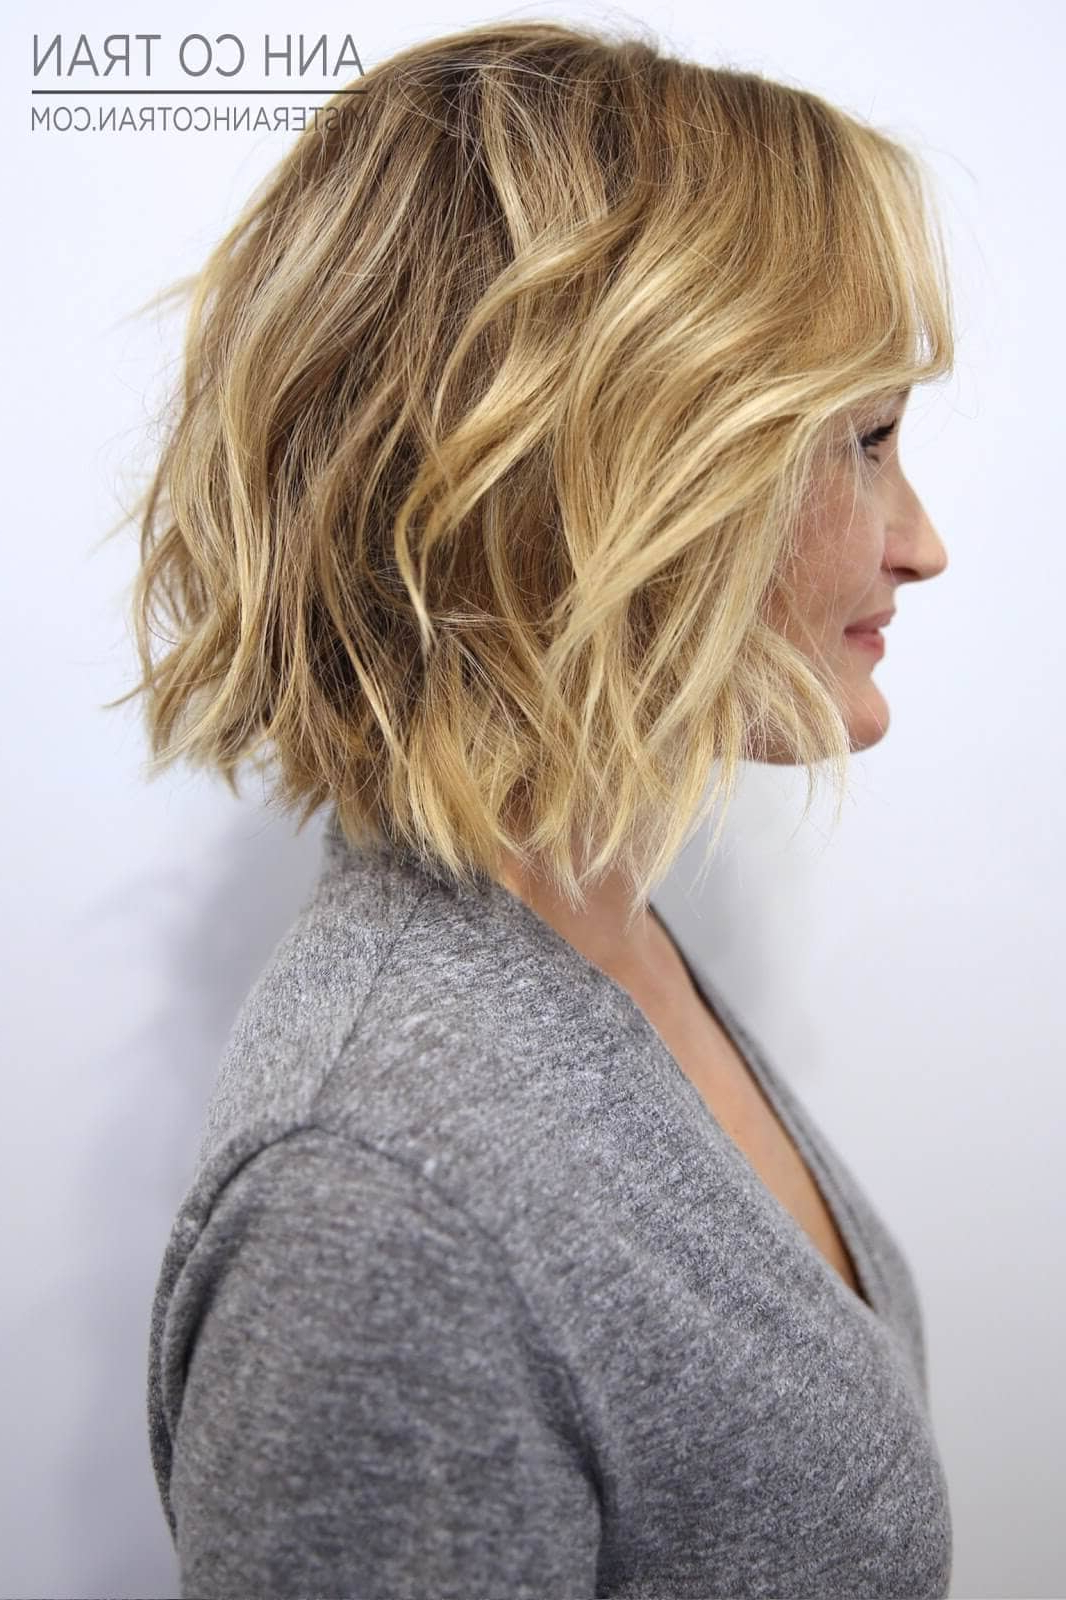 50 Ways To Wear Short Hair With Bangs For A Fresh New Look Pertaining To Sunny Blonde Finely Chopped Pixie Haircuts (View 7 of 20)